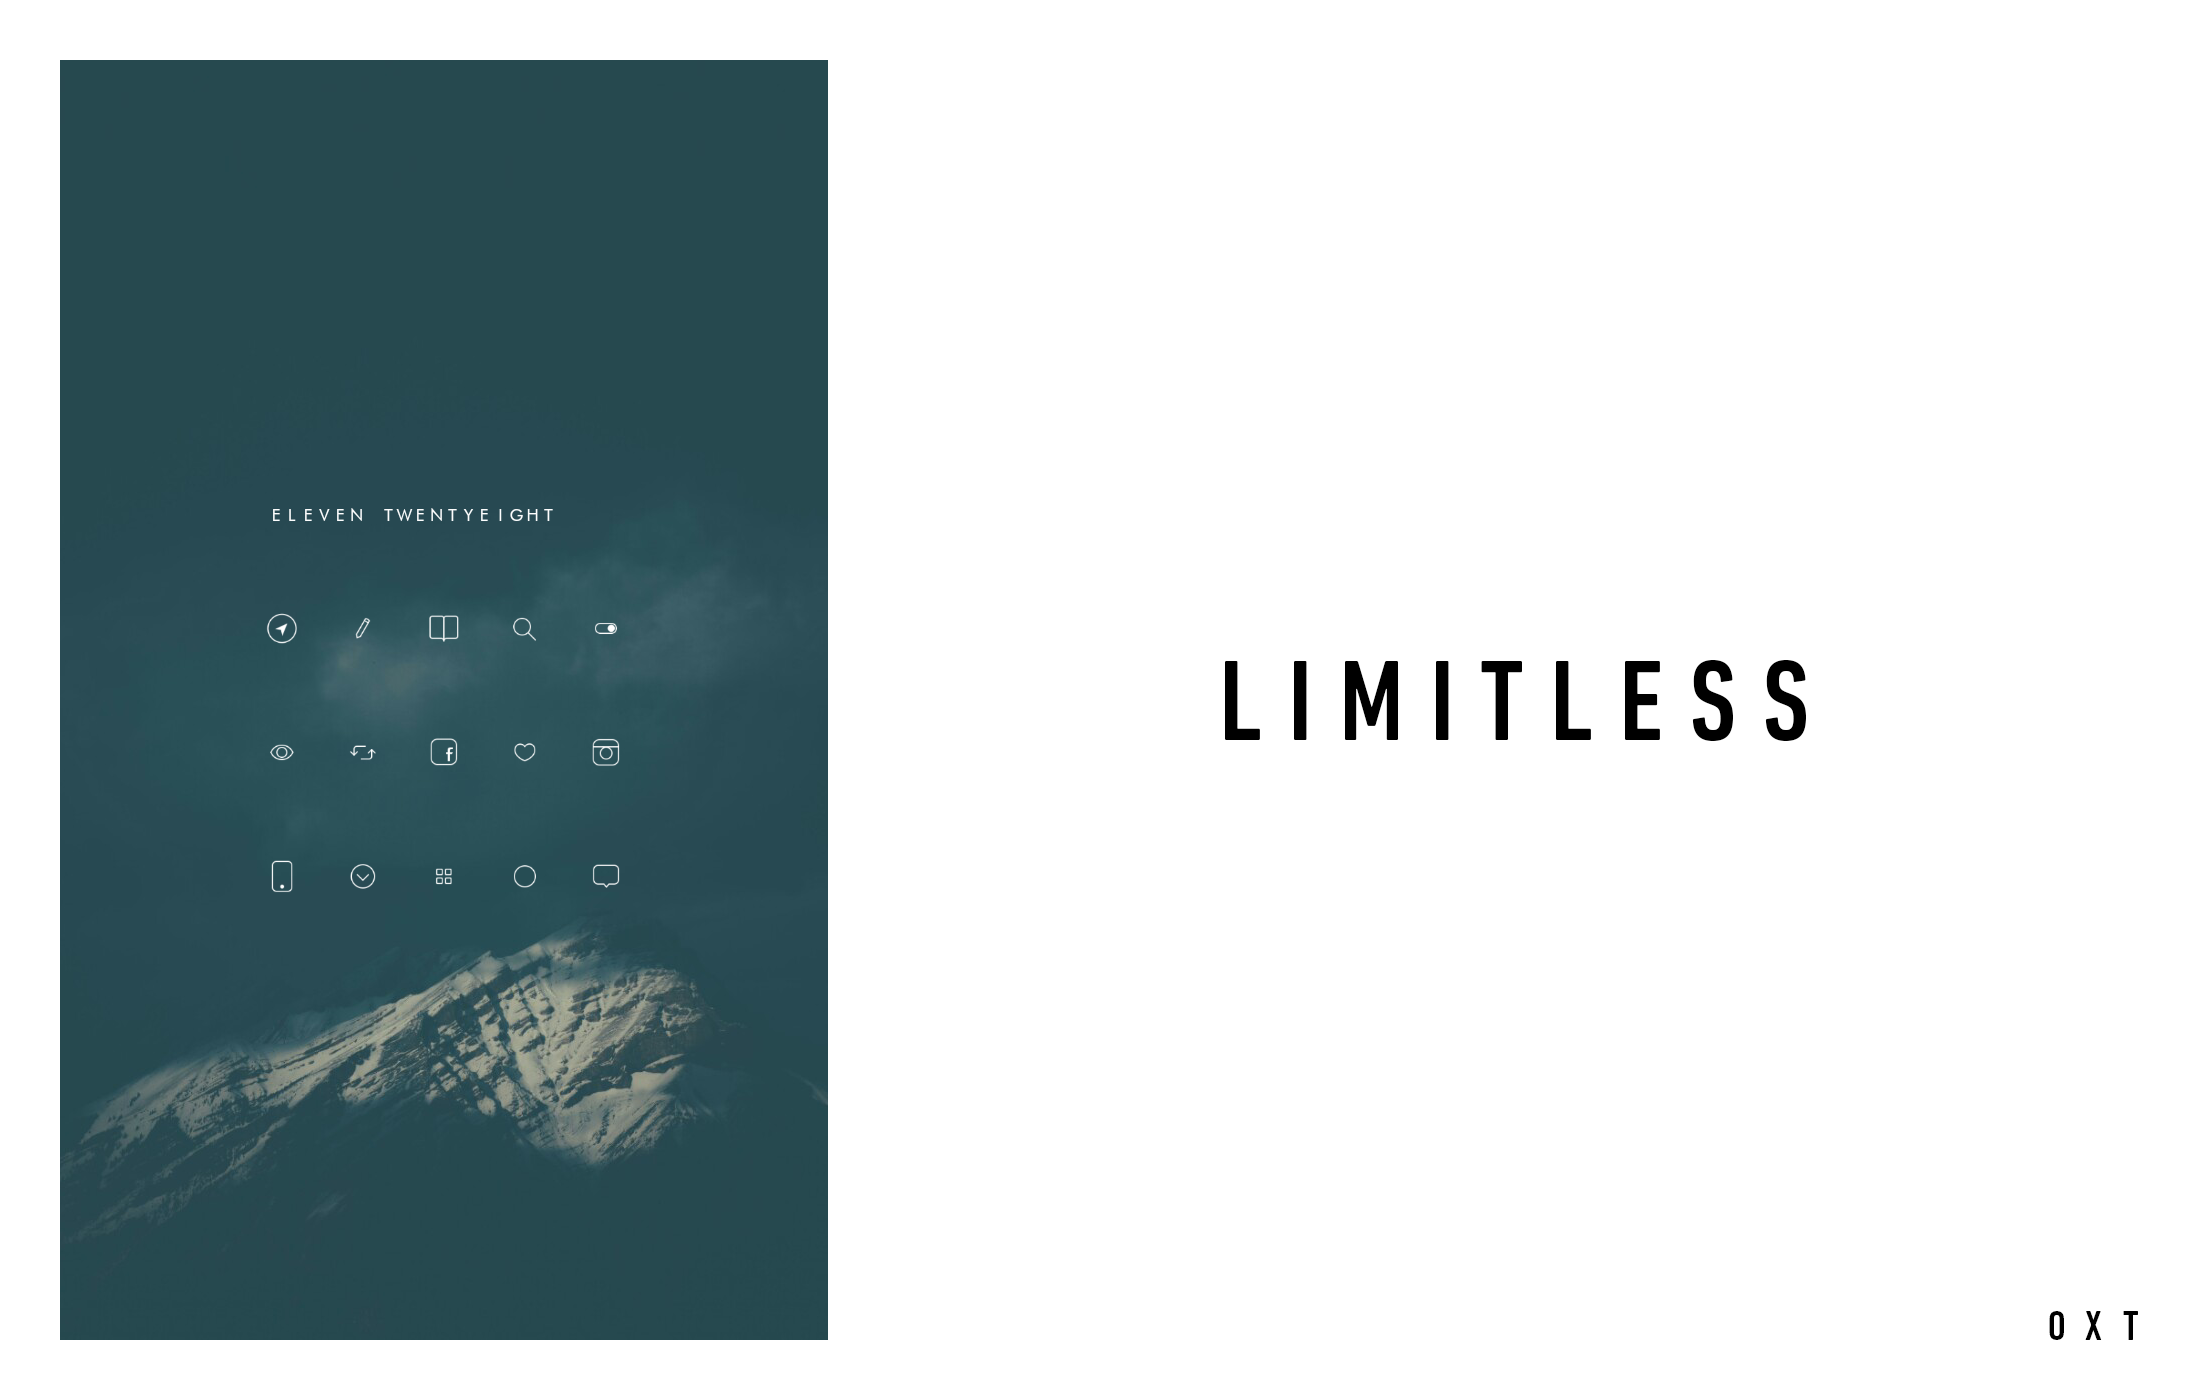 Limitless definition